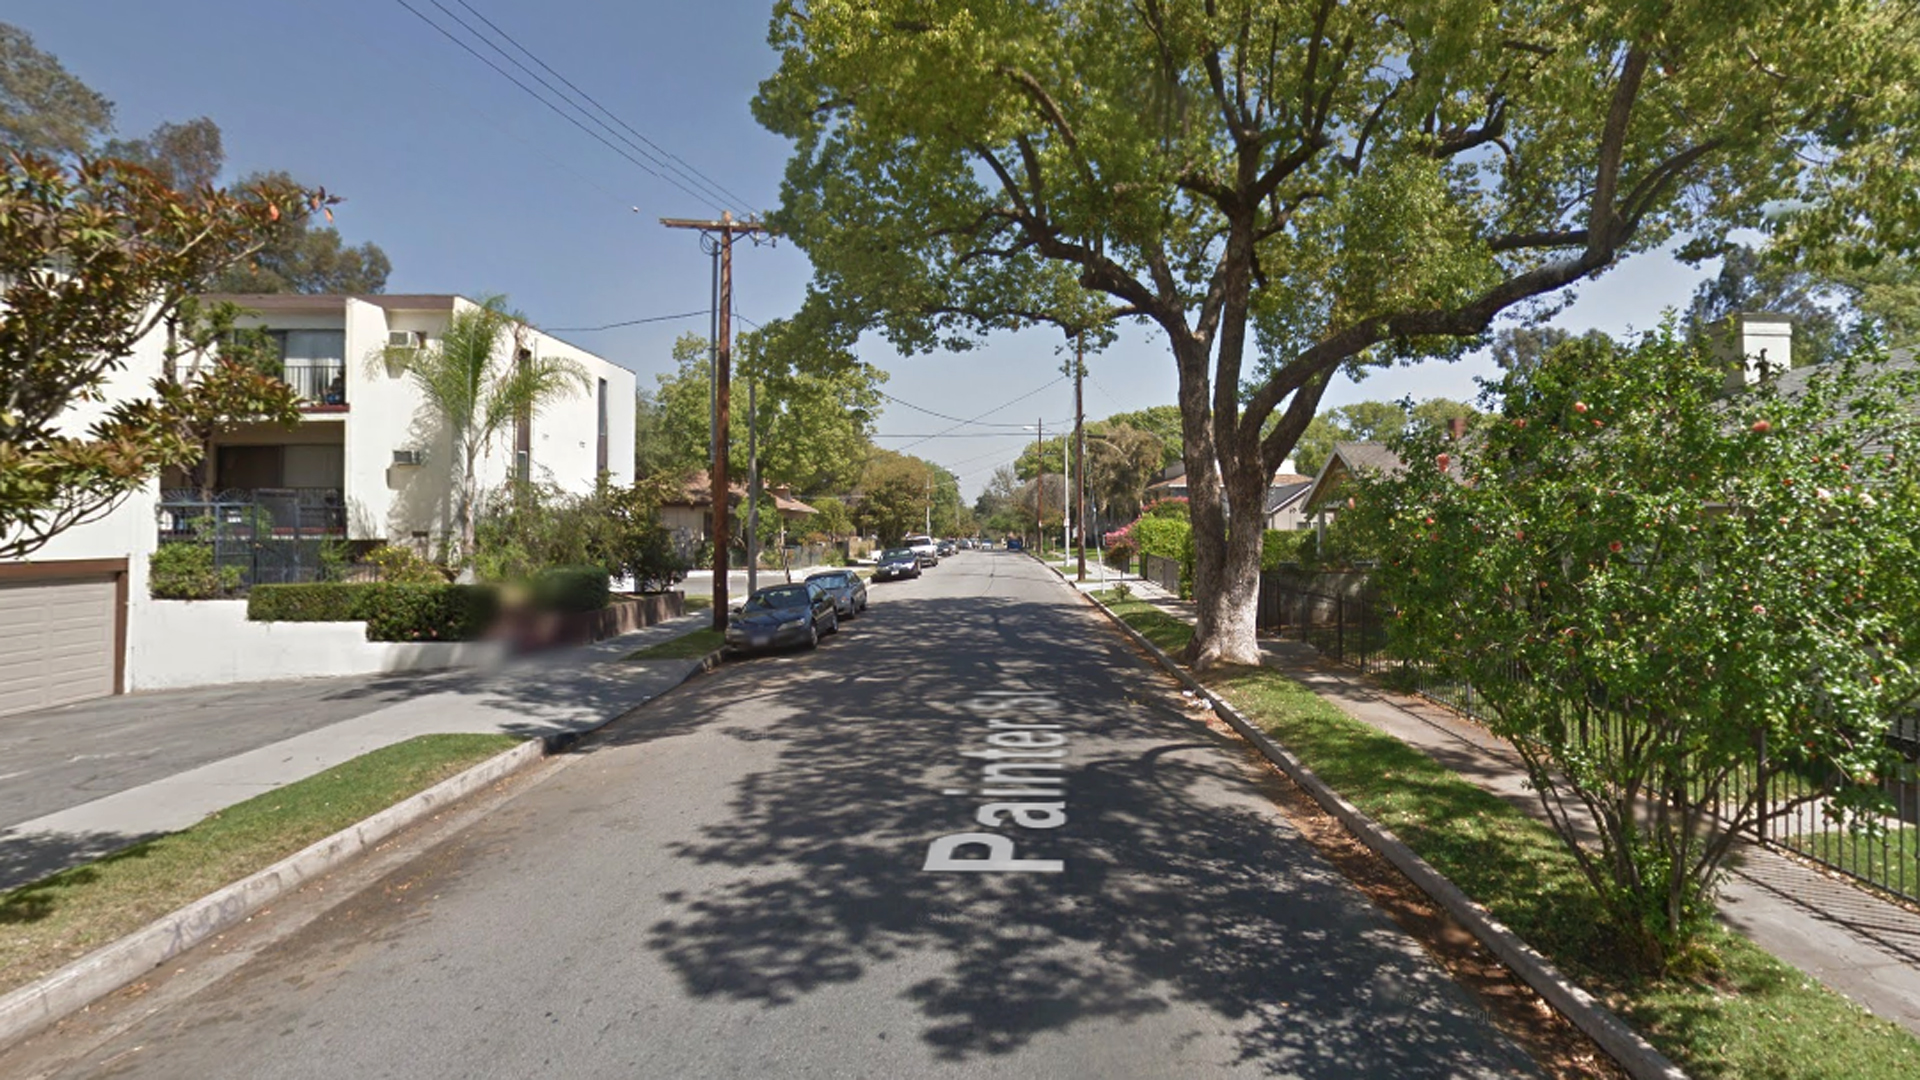 The 100 block of Painter Street in Pasadena, as viewed in a Google Street View image.